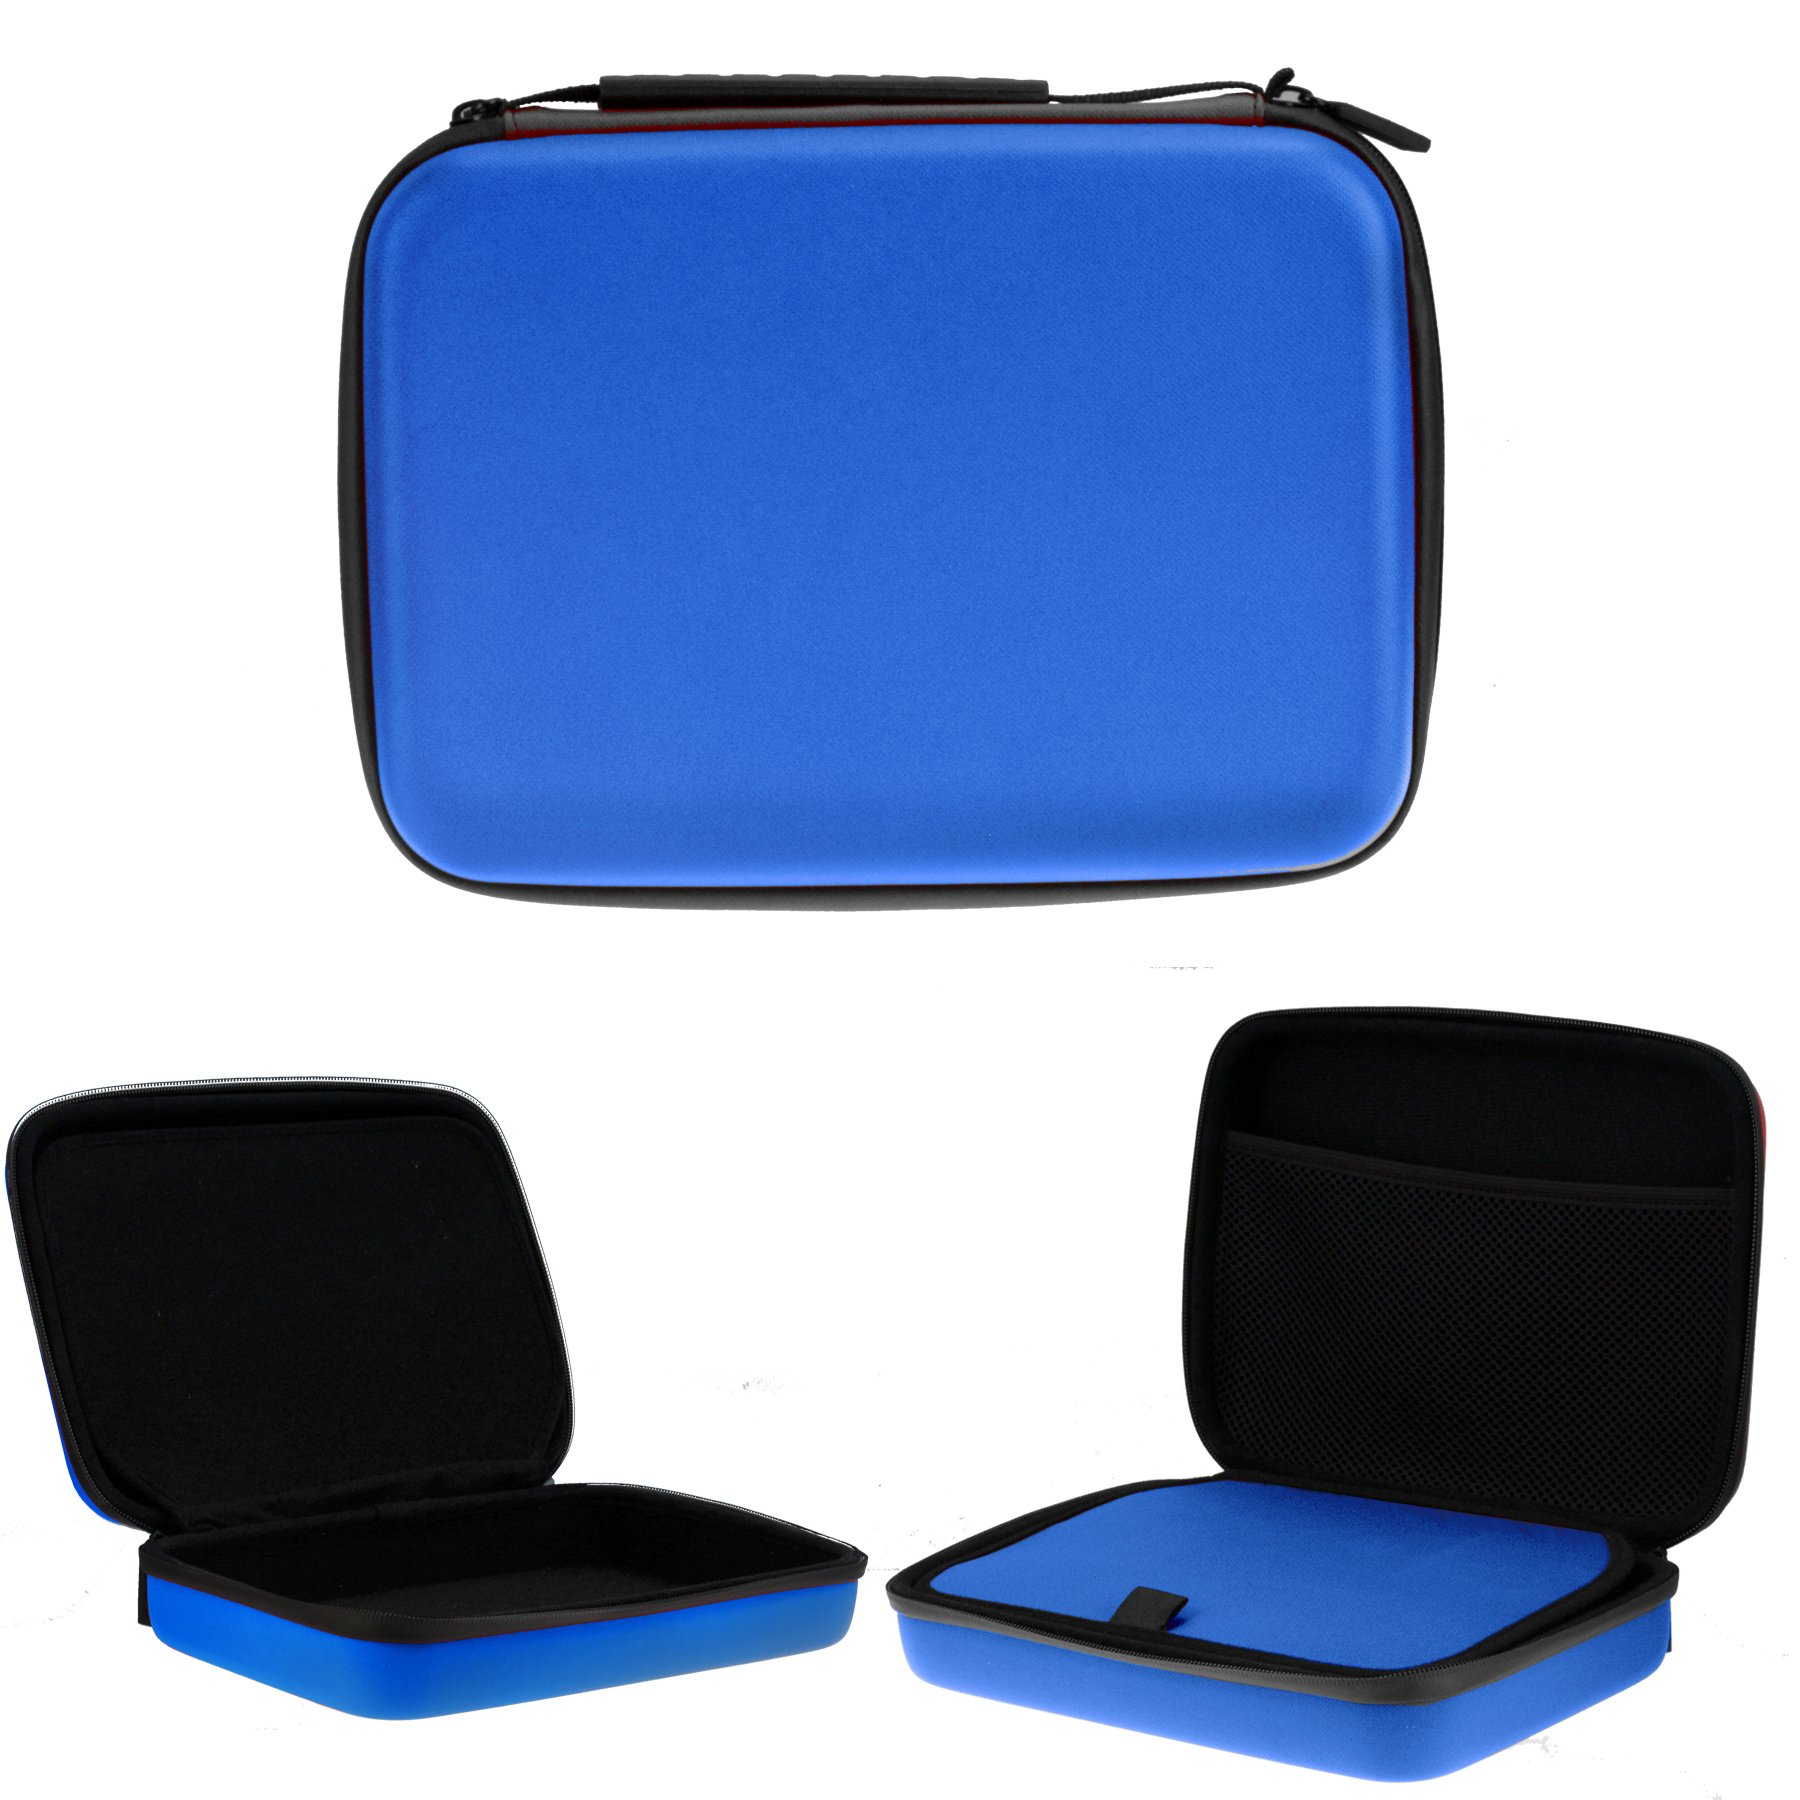 Navitech Blue Heavy Duty Rugged Hard Case/Cover Compatible With The HP ProDesk 400 G3 Mini Desktop PC